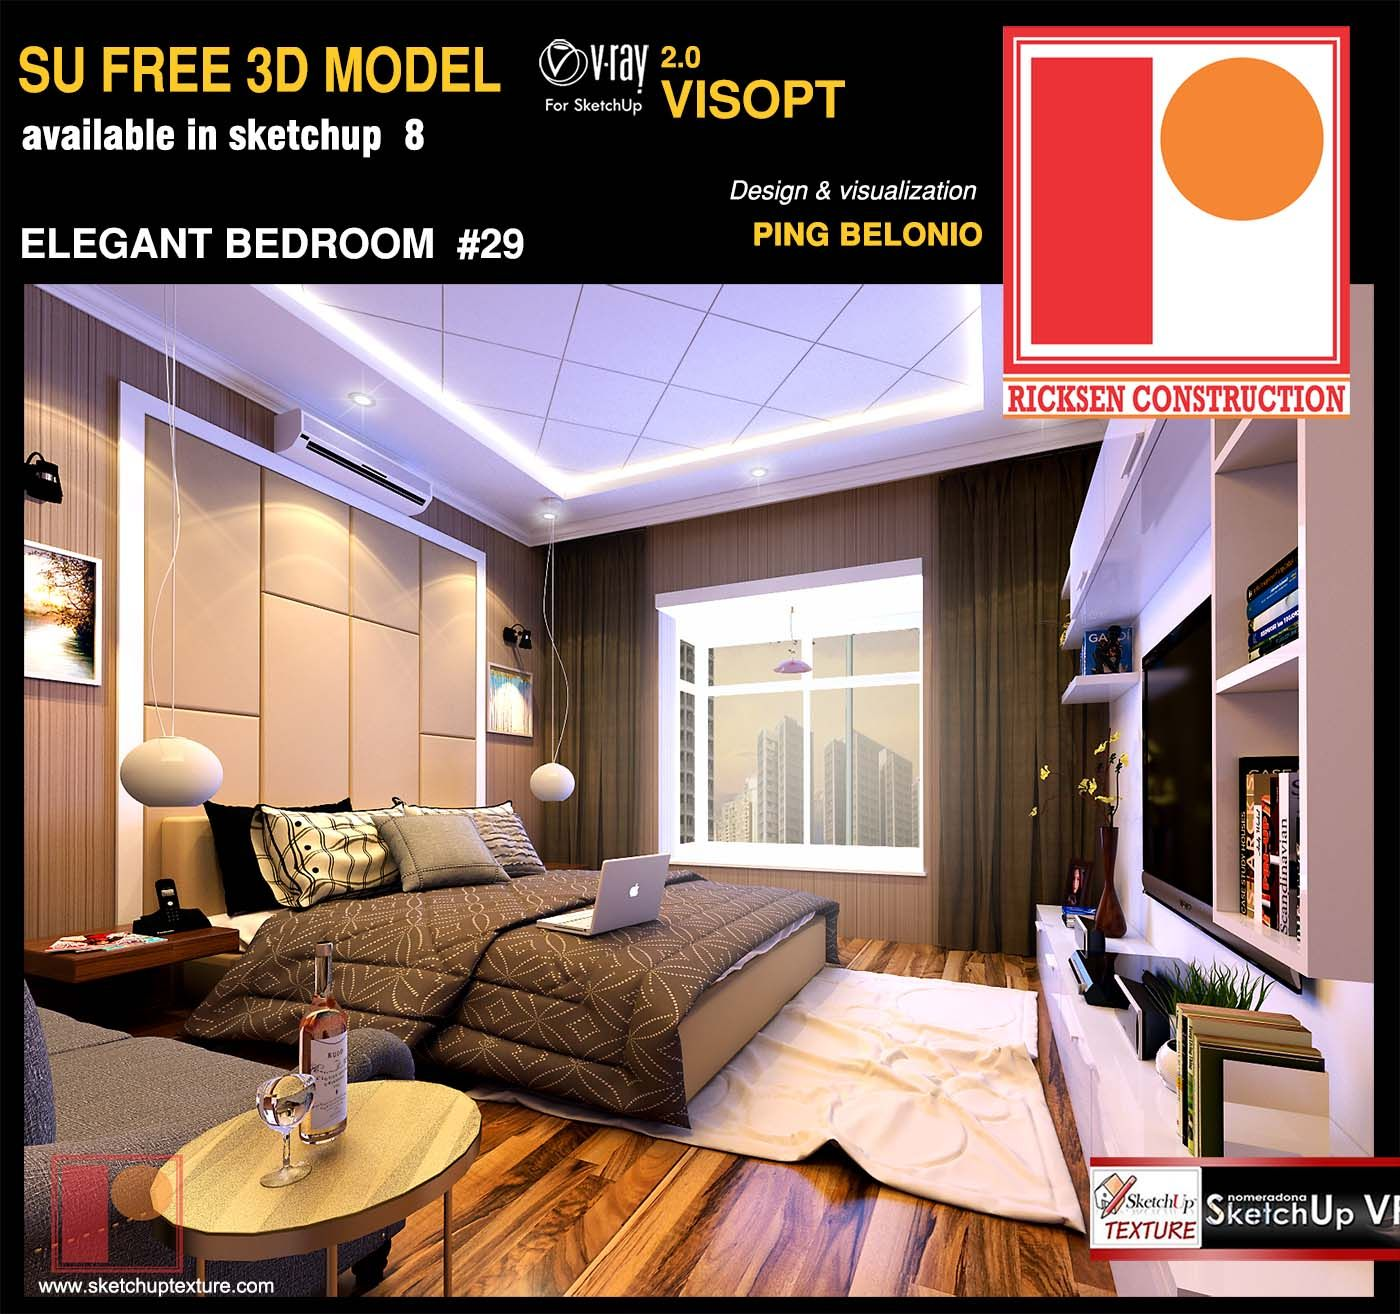 Home Design Software Sketchup: Pin By SKETCHUP TEXTURE On SketchUp Free 3D Models